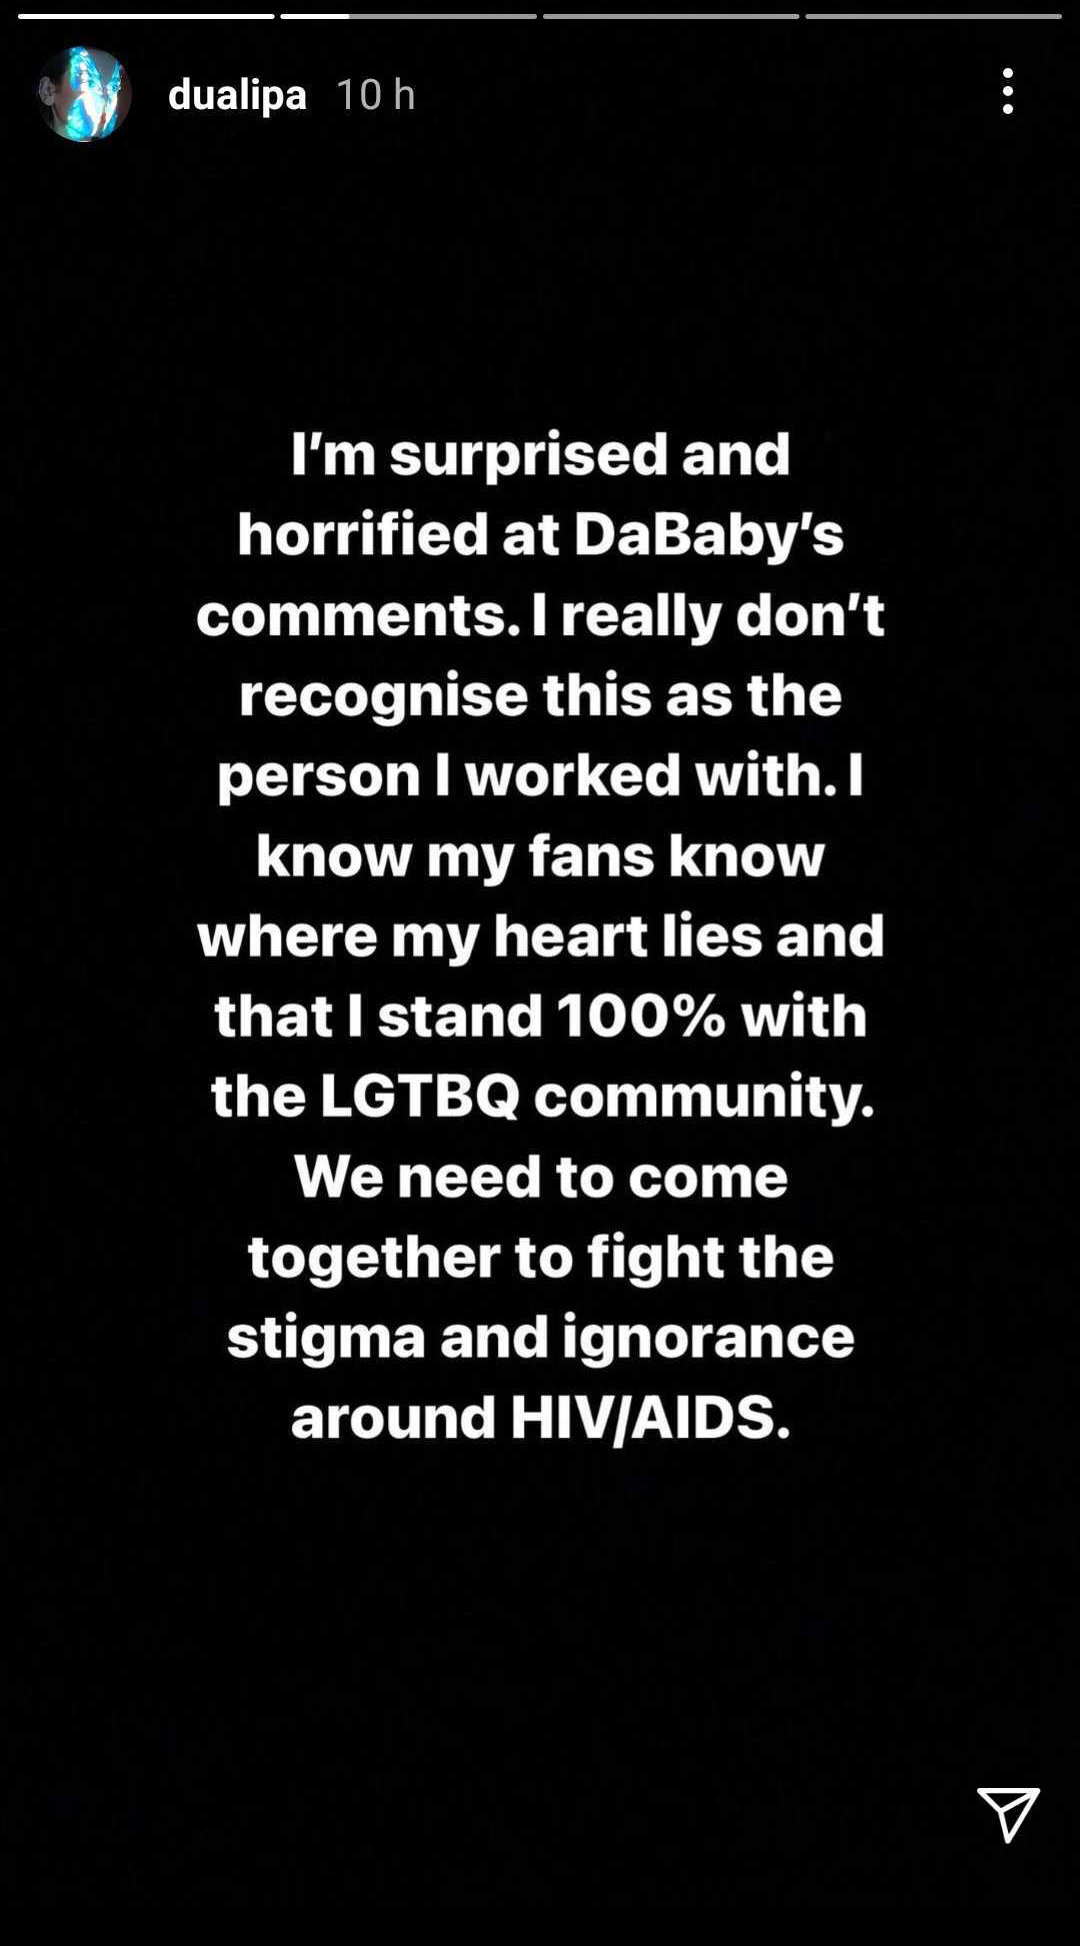 Dua Lipa responds to DaBaby homophobic comments at Rolling Loud Miami